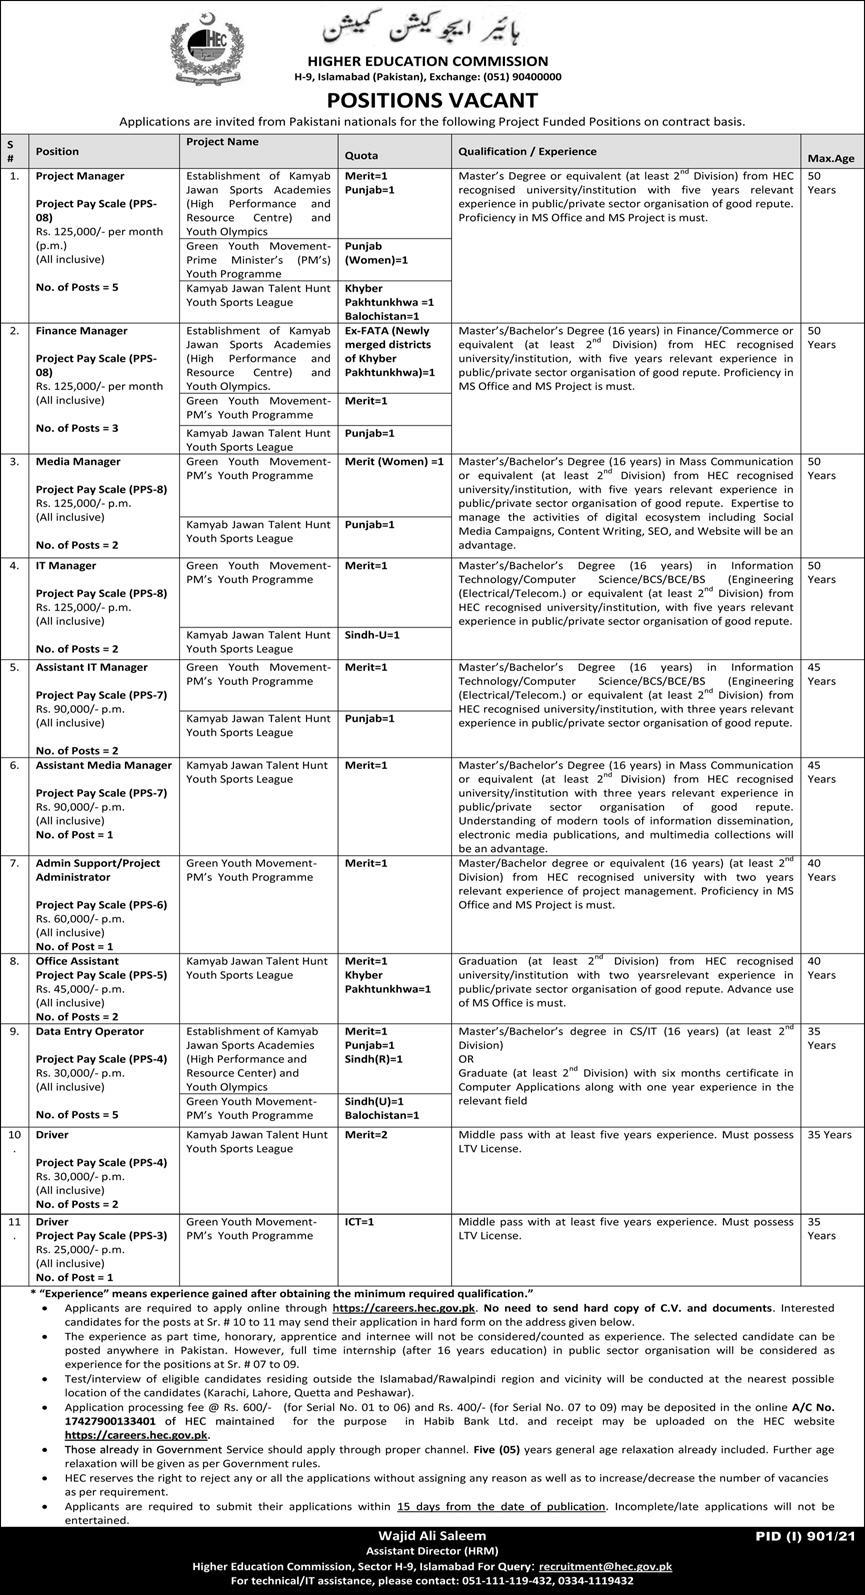 Higher Education Commission Latest Jobs 2021